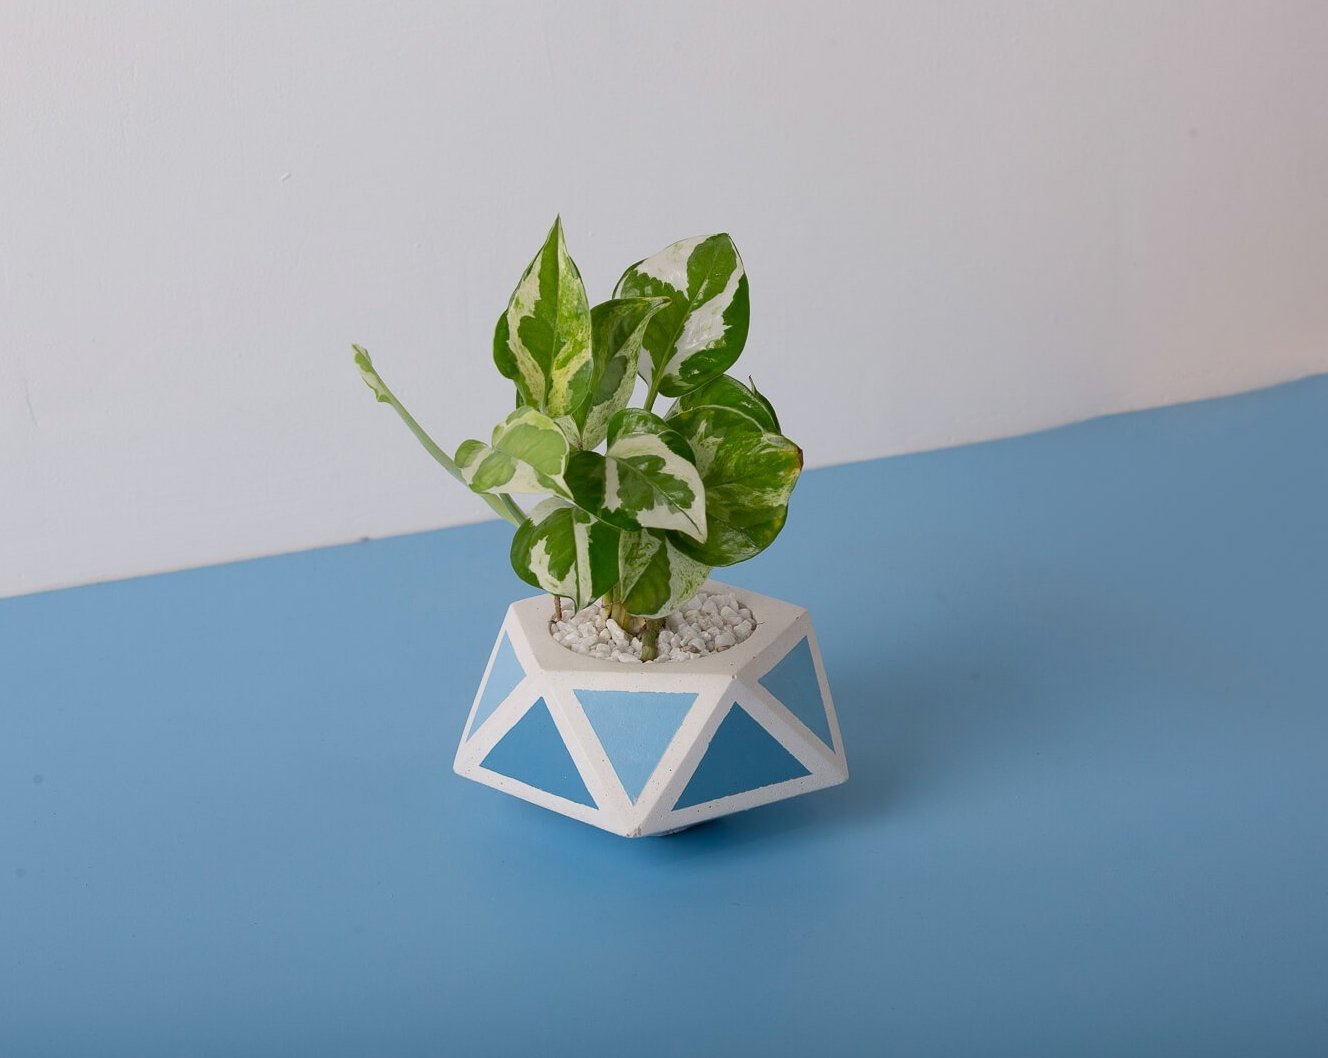 Concrete Floater Planter - Blue Invertrix Collection - Eliteearth